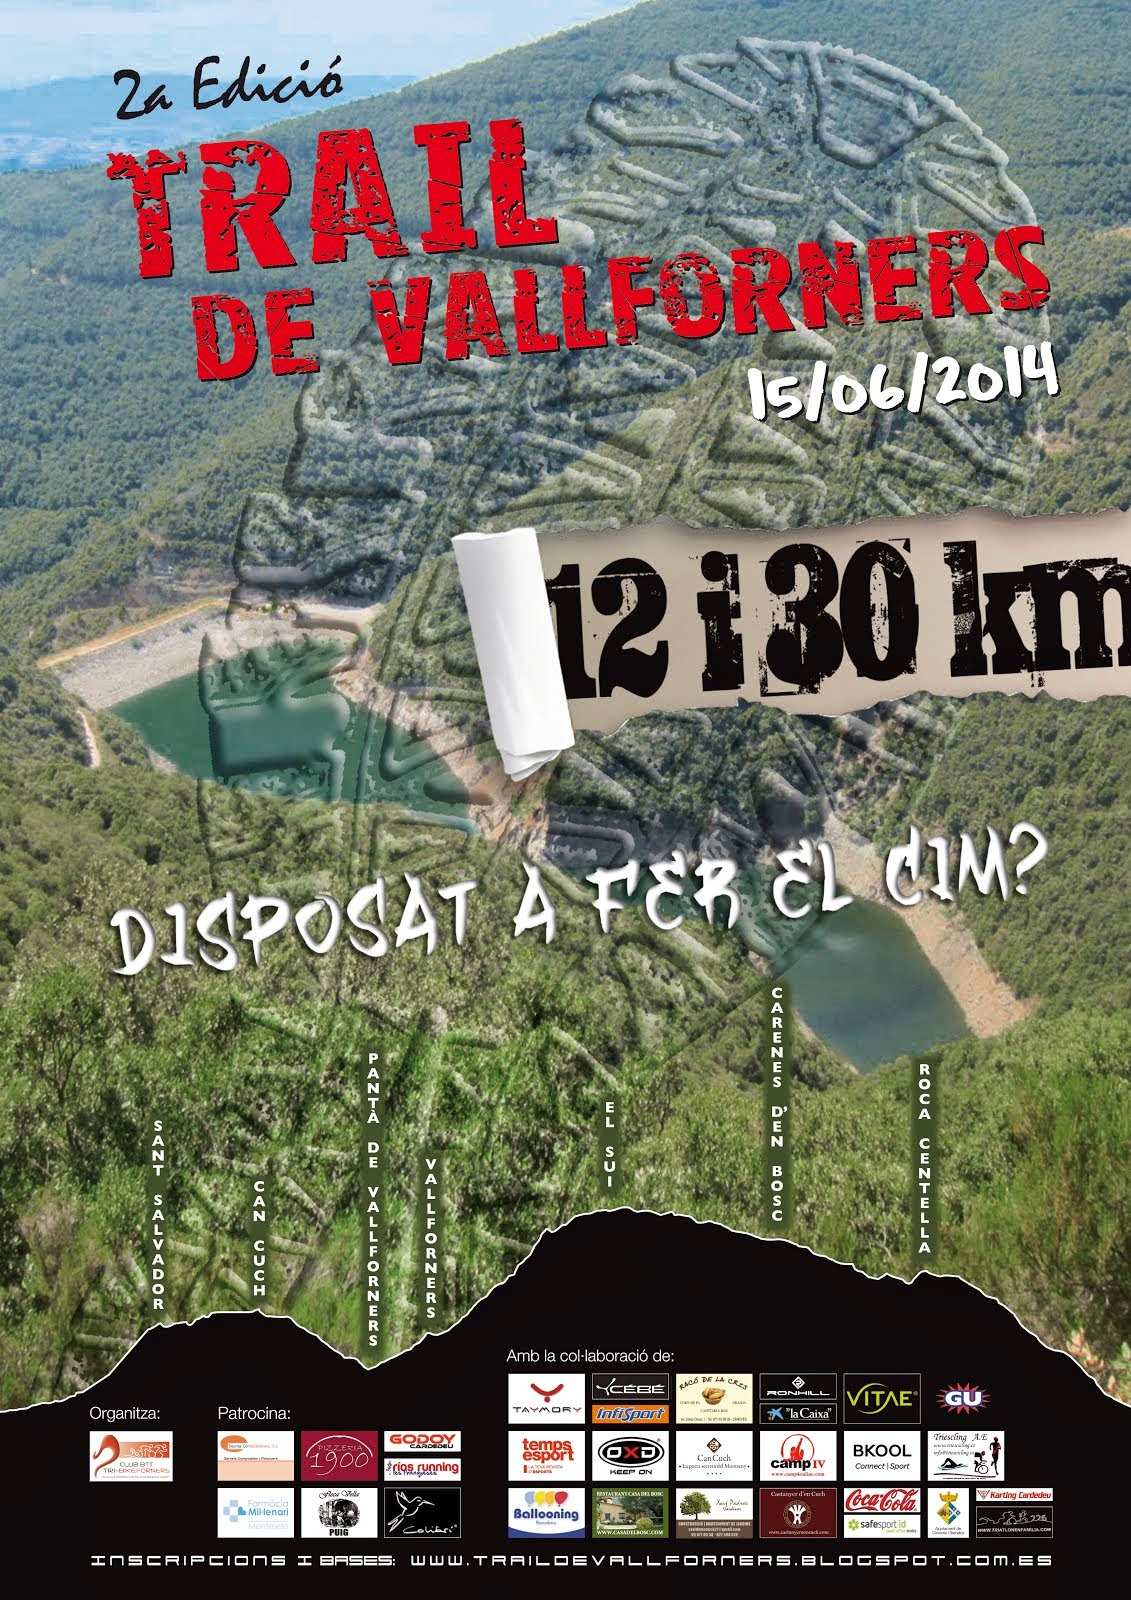 Trail de Vallforners